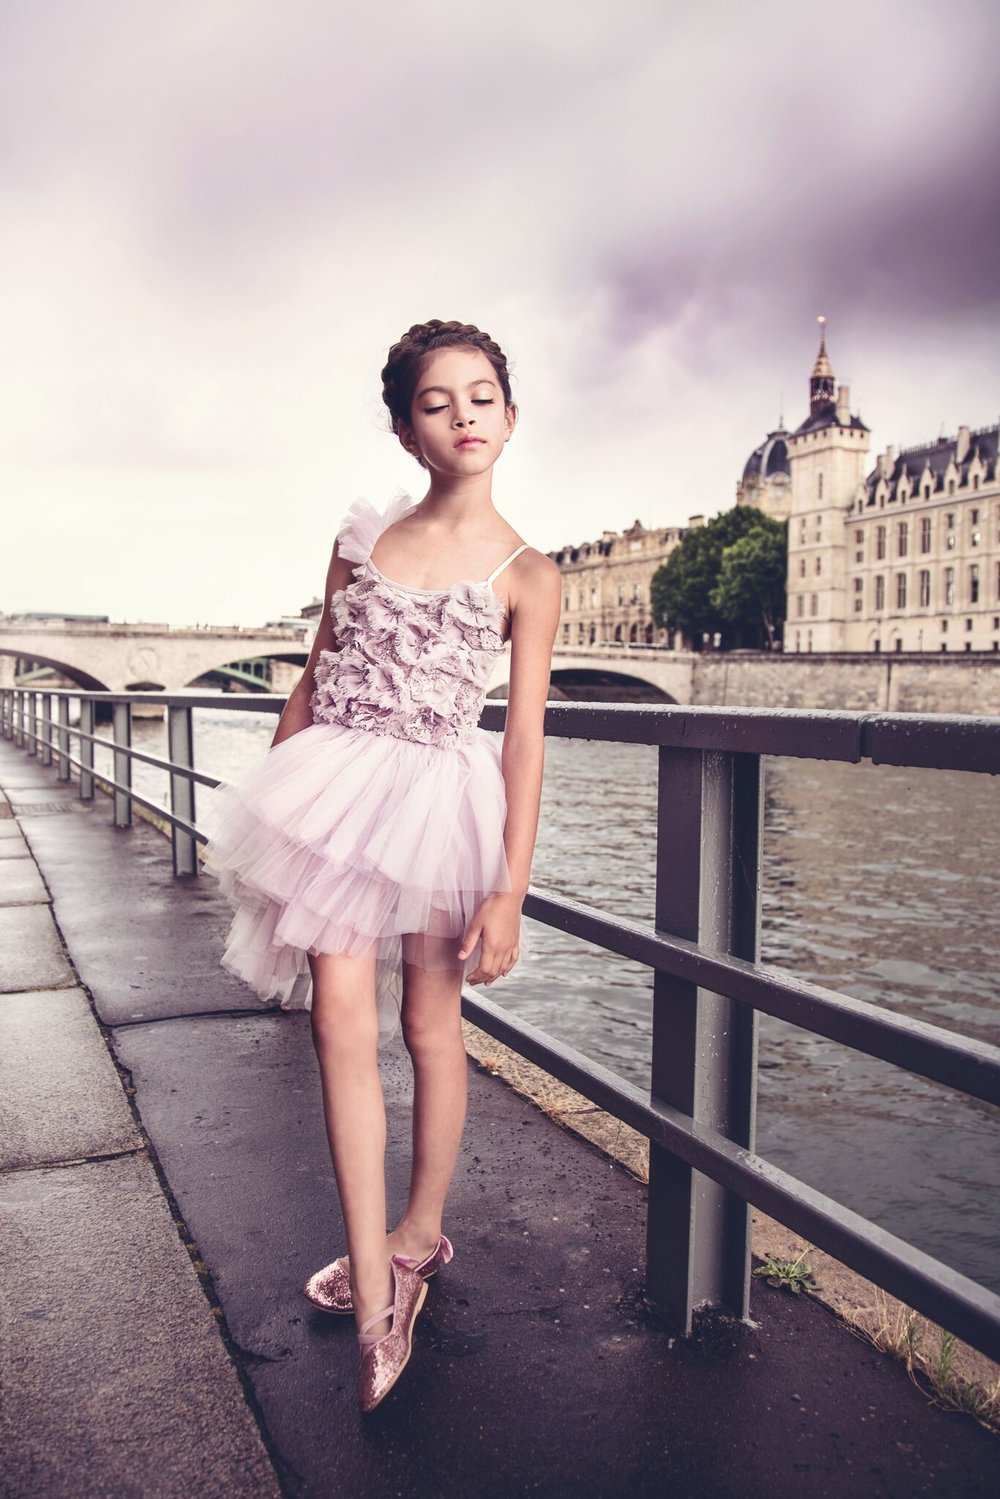 Eliza_Logan_Photography_TutuDuMonde_Paris_3Q7A3096_edit_preview.jpeg